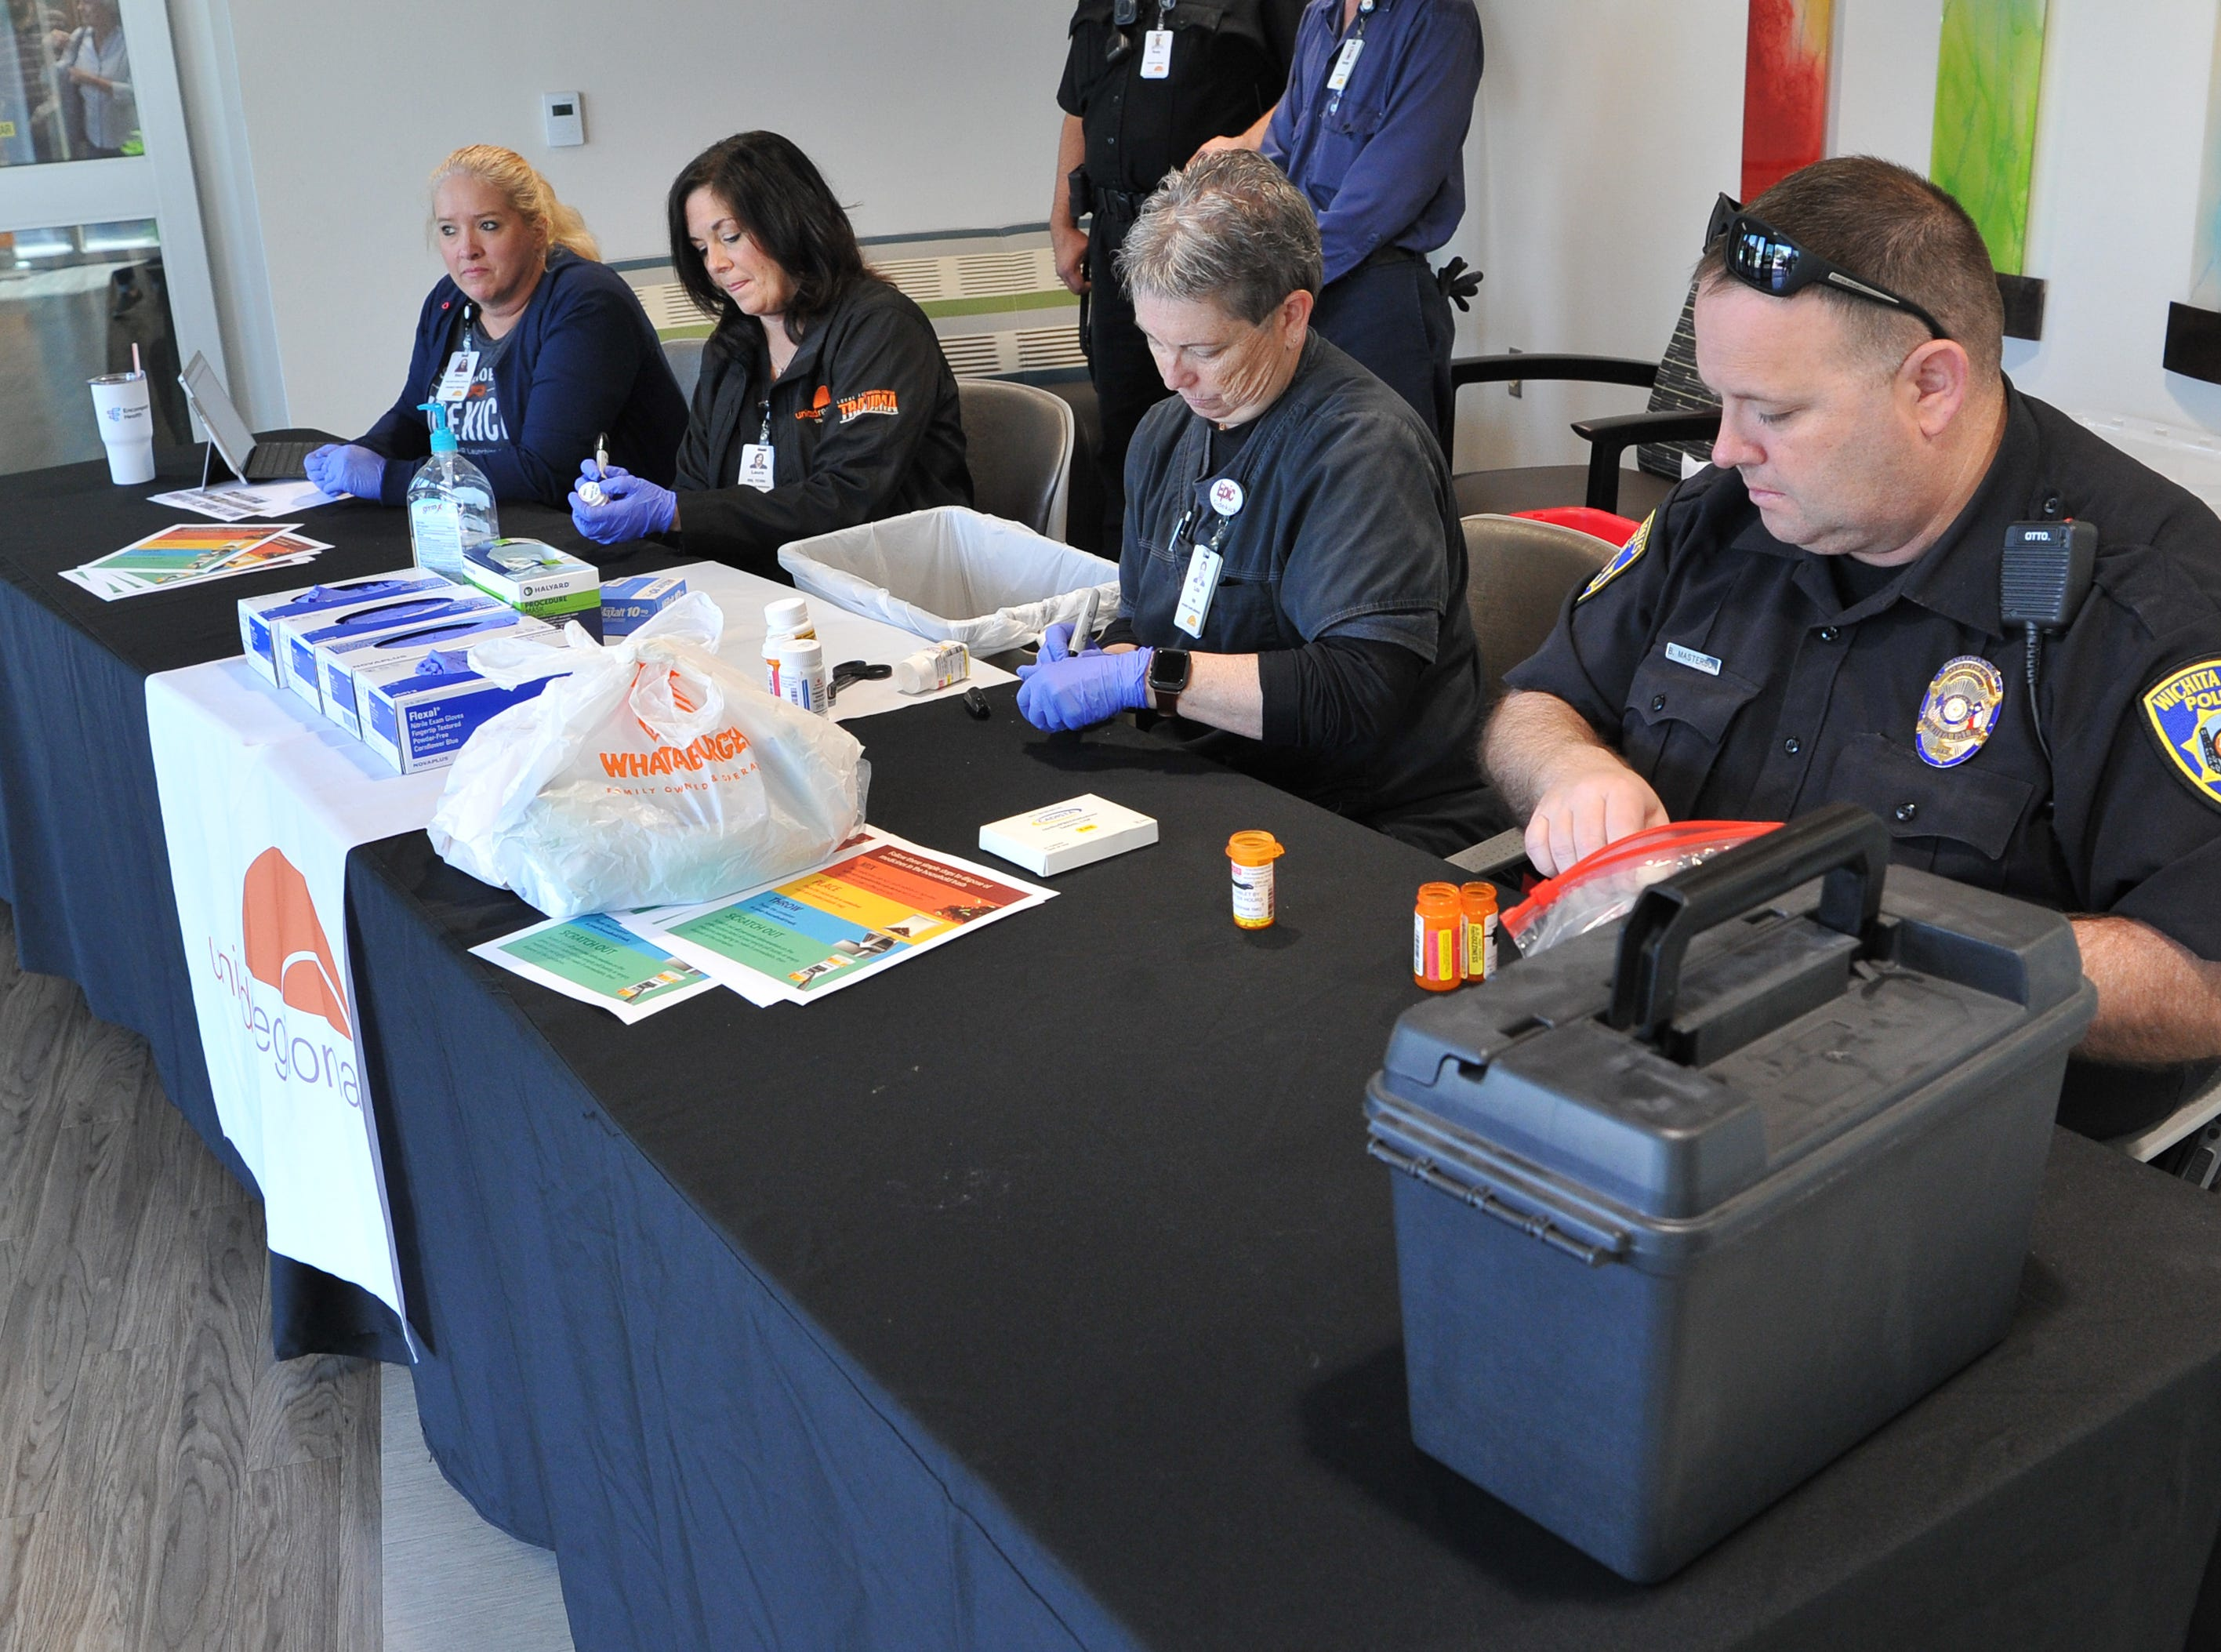 United Regional hospital staff members and Wichita Falls police collect medication during United Regional hospital's and the Wichita Falls Police department's drug take-back event held at the south end of the Emergency Room, Friday afternoon.